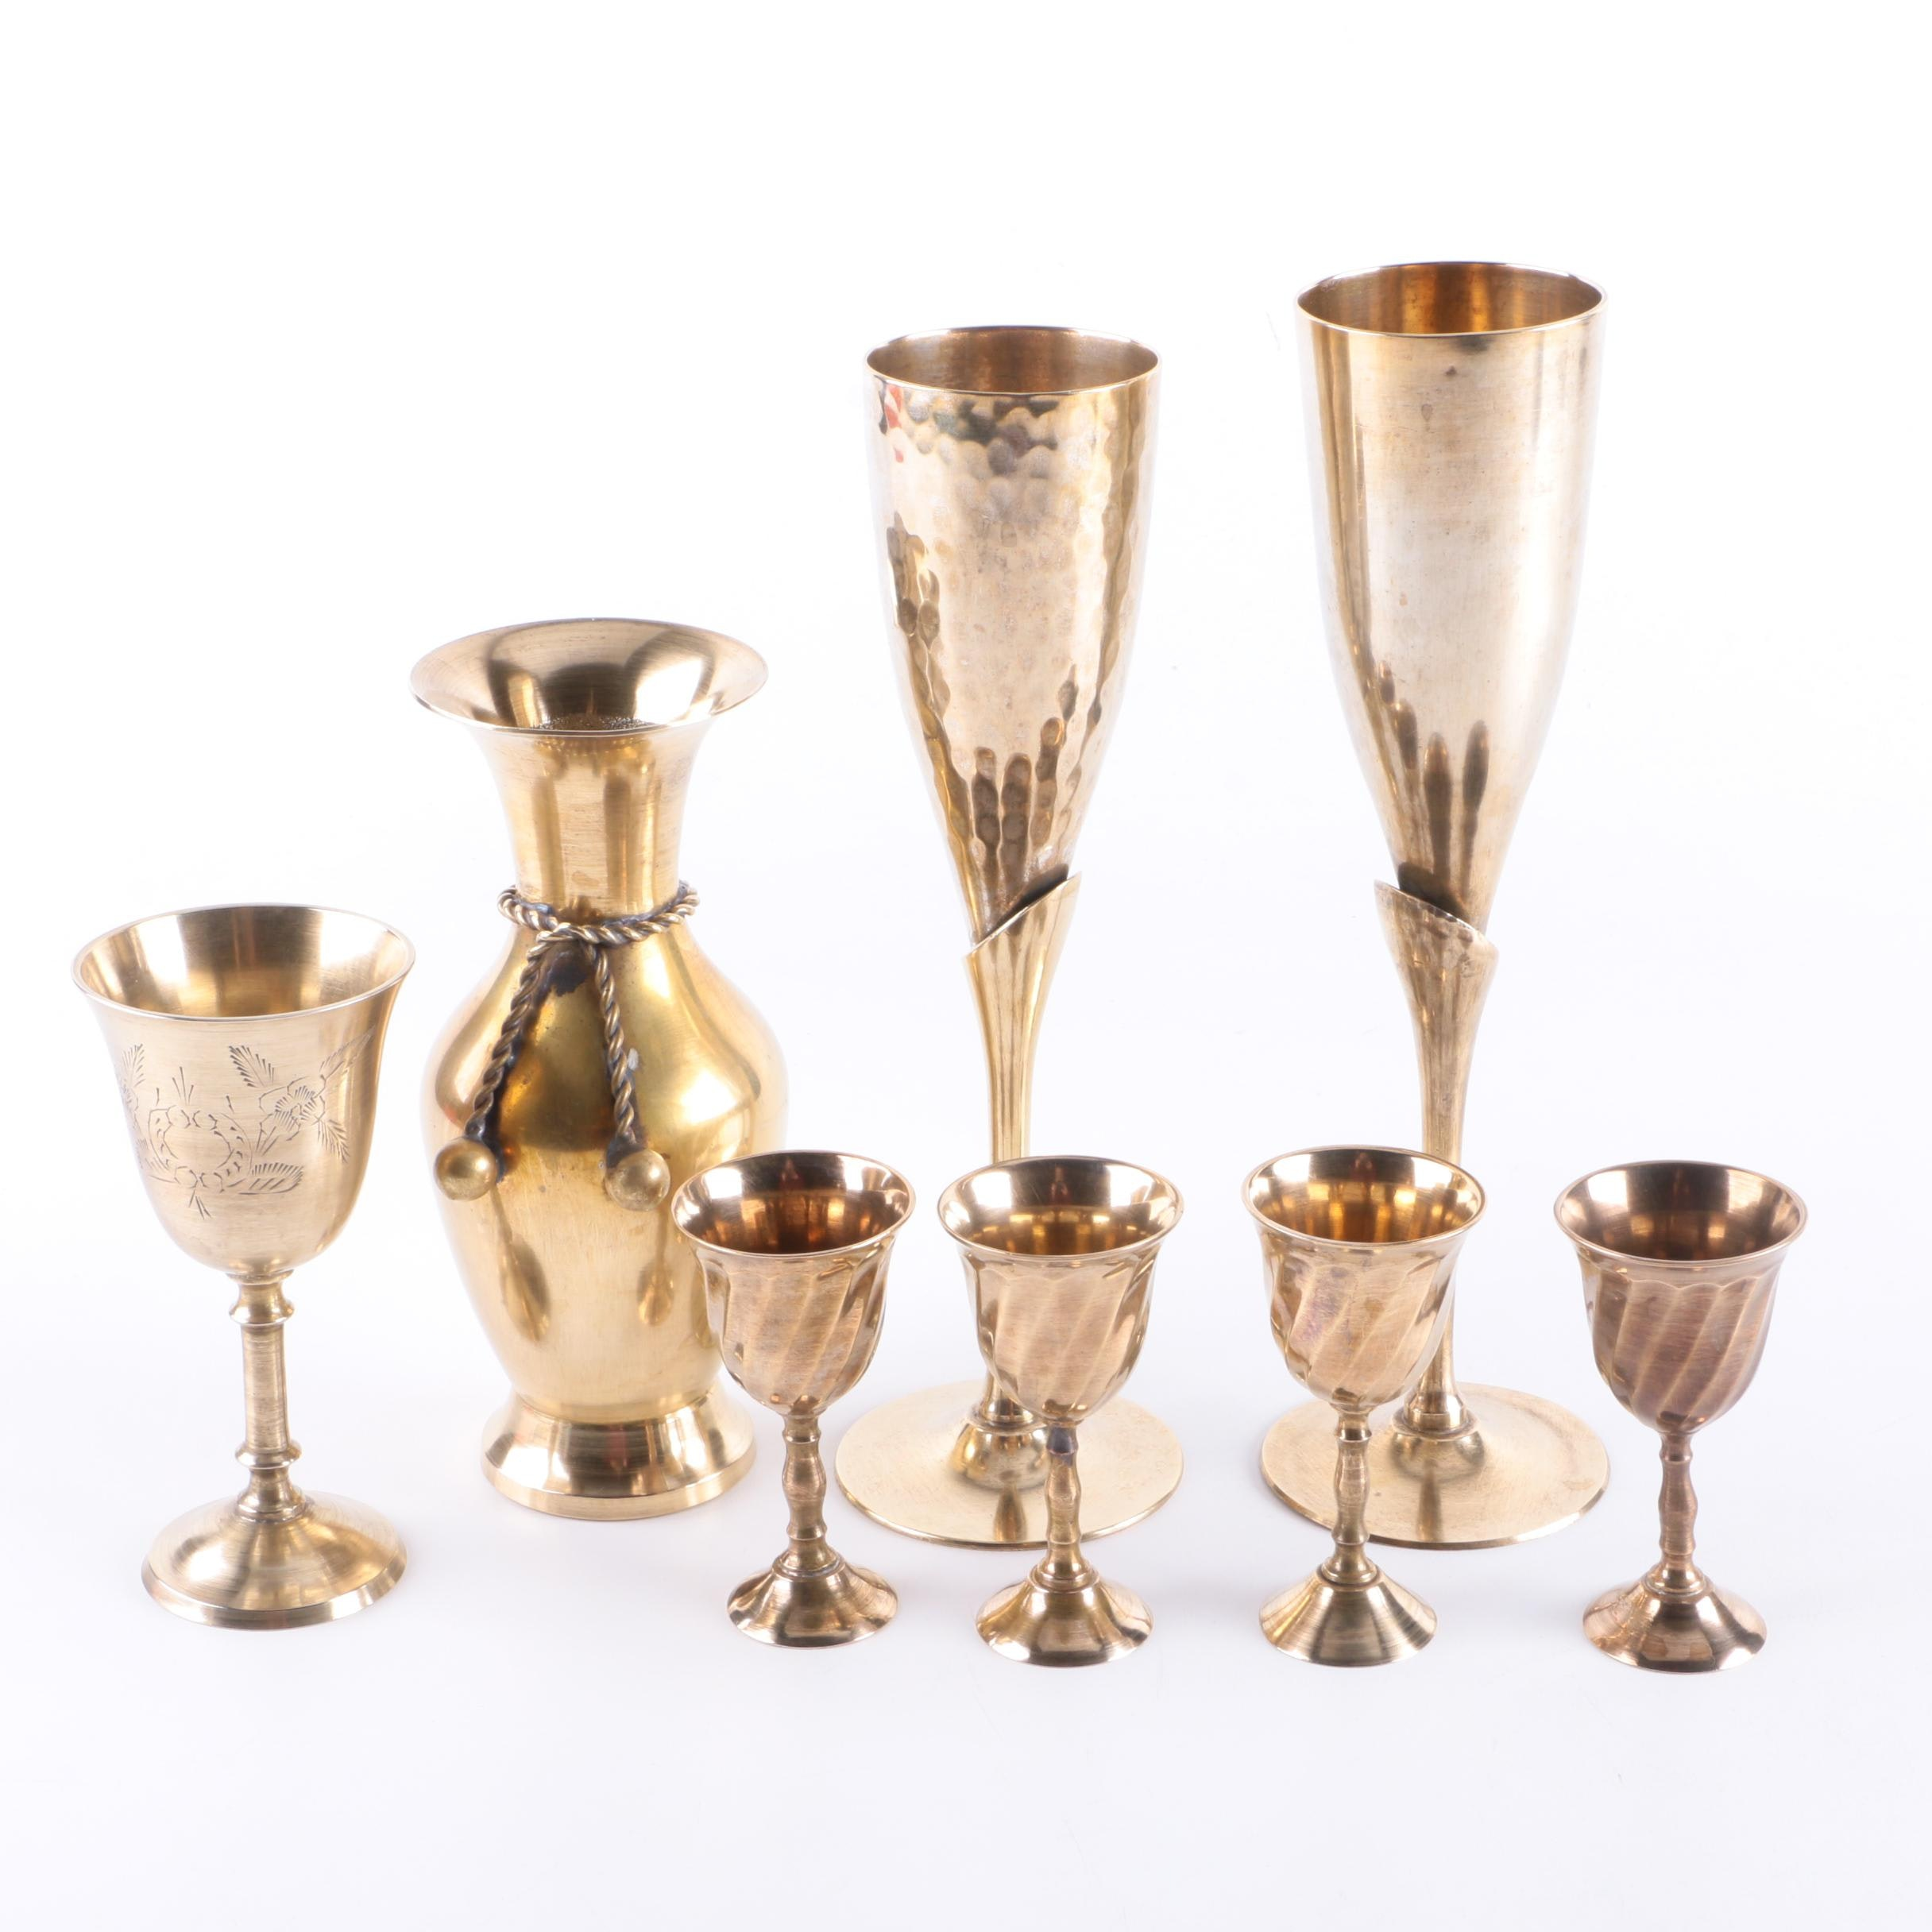 Brass Stemware and Decorative Vase